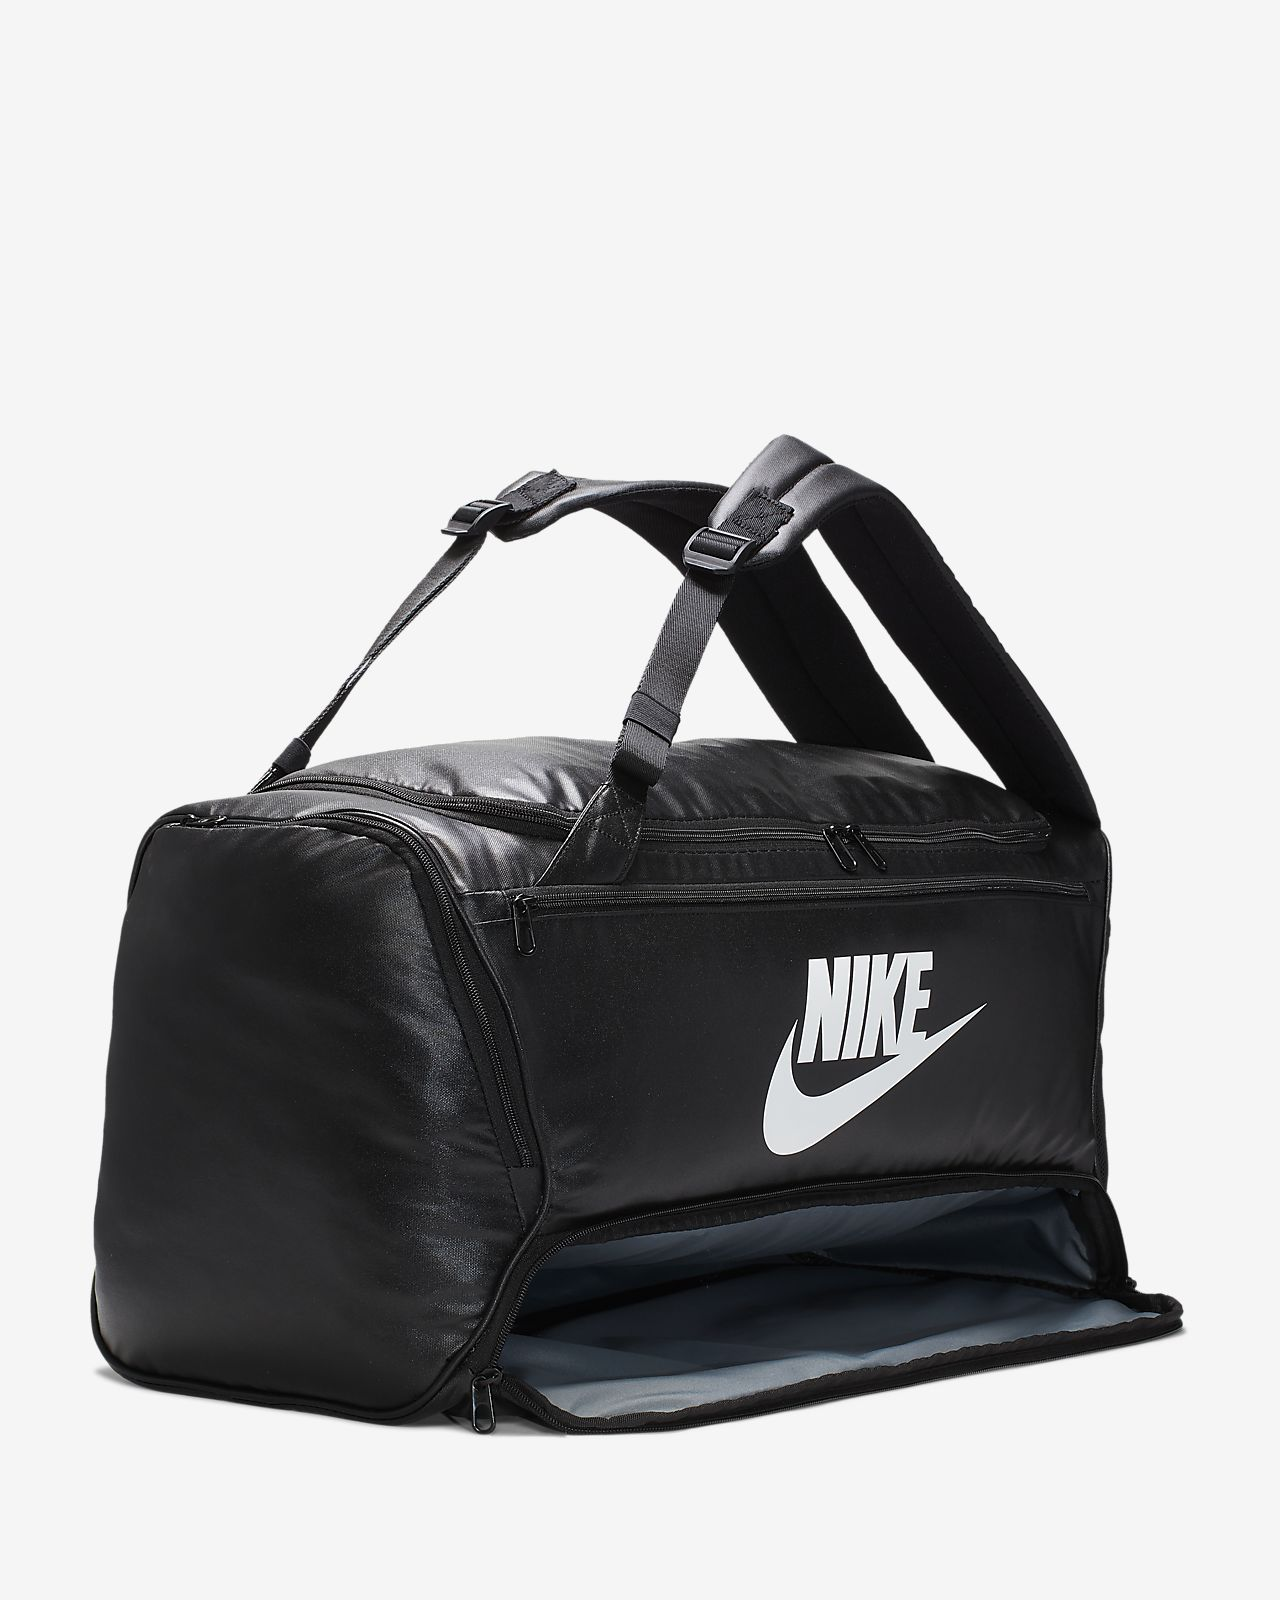 Convertible Duffel Bag Backpack Nike Ph